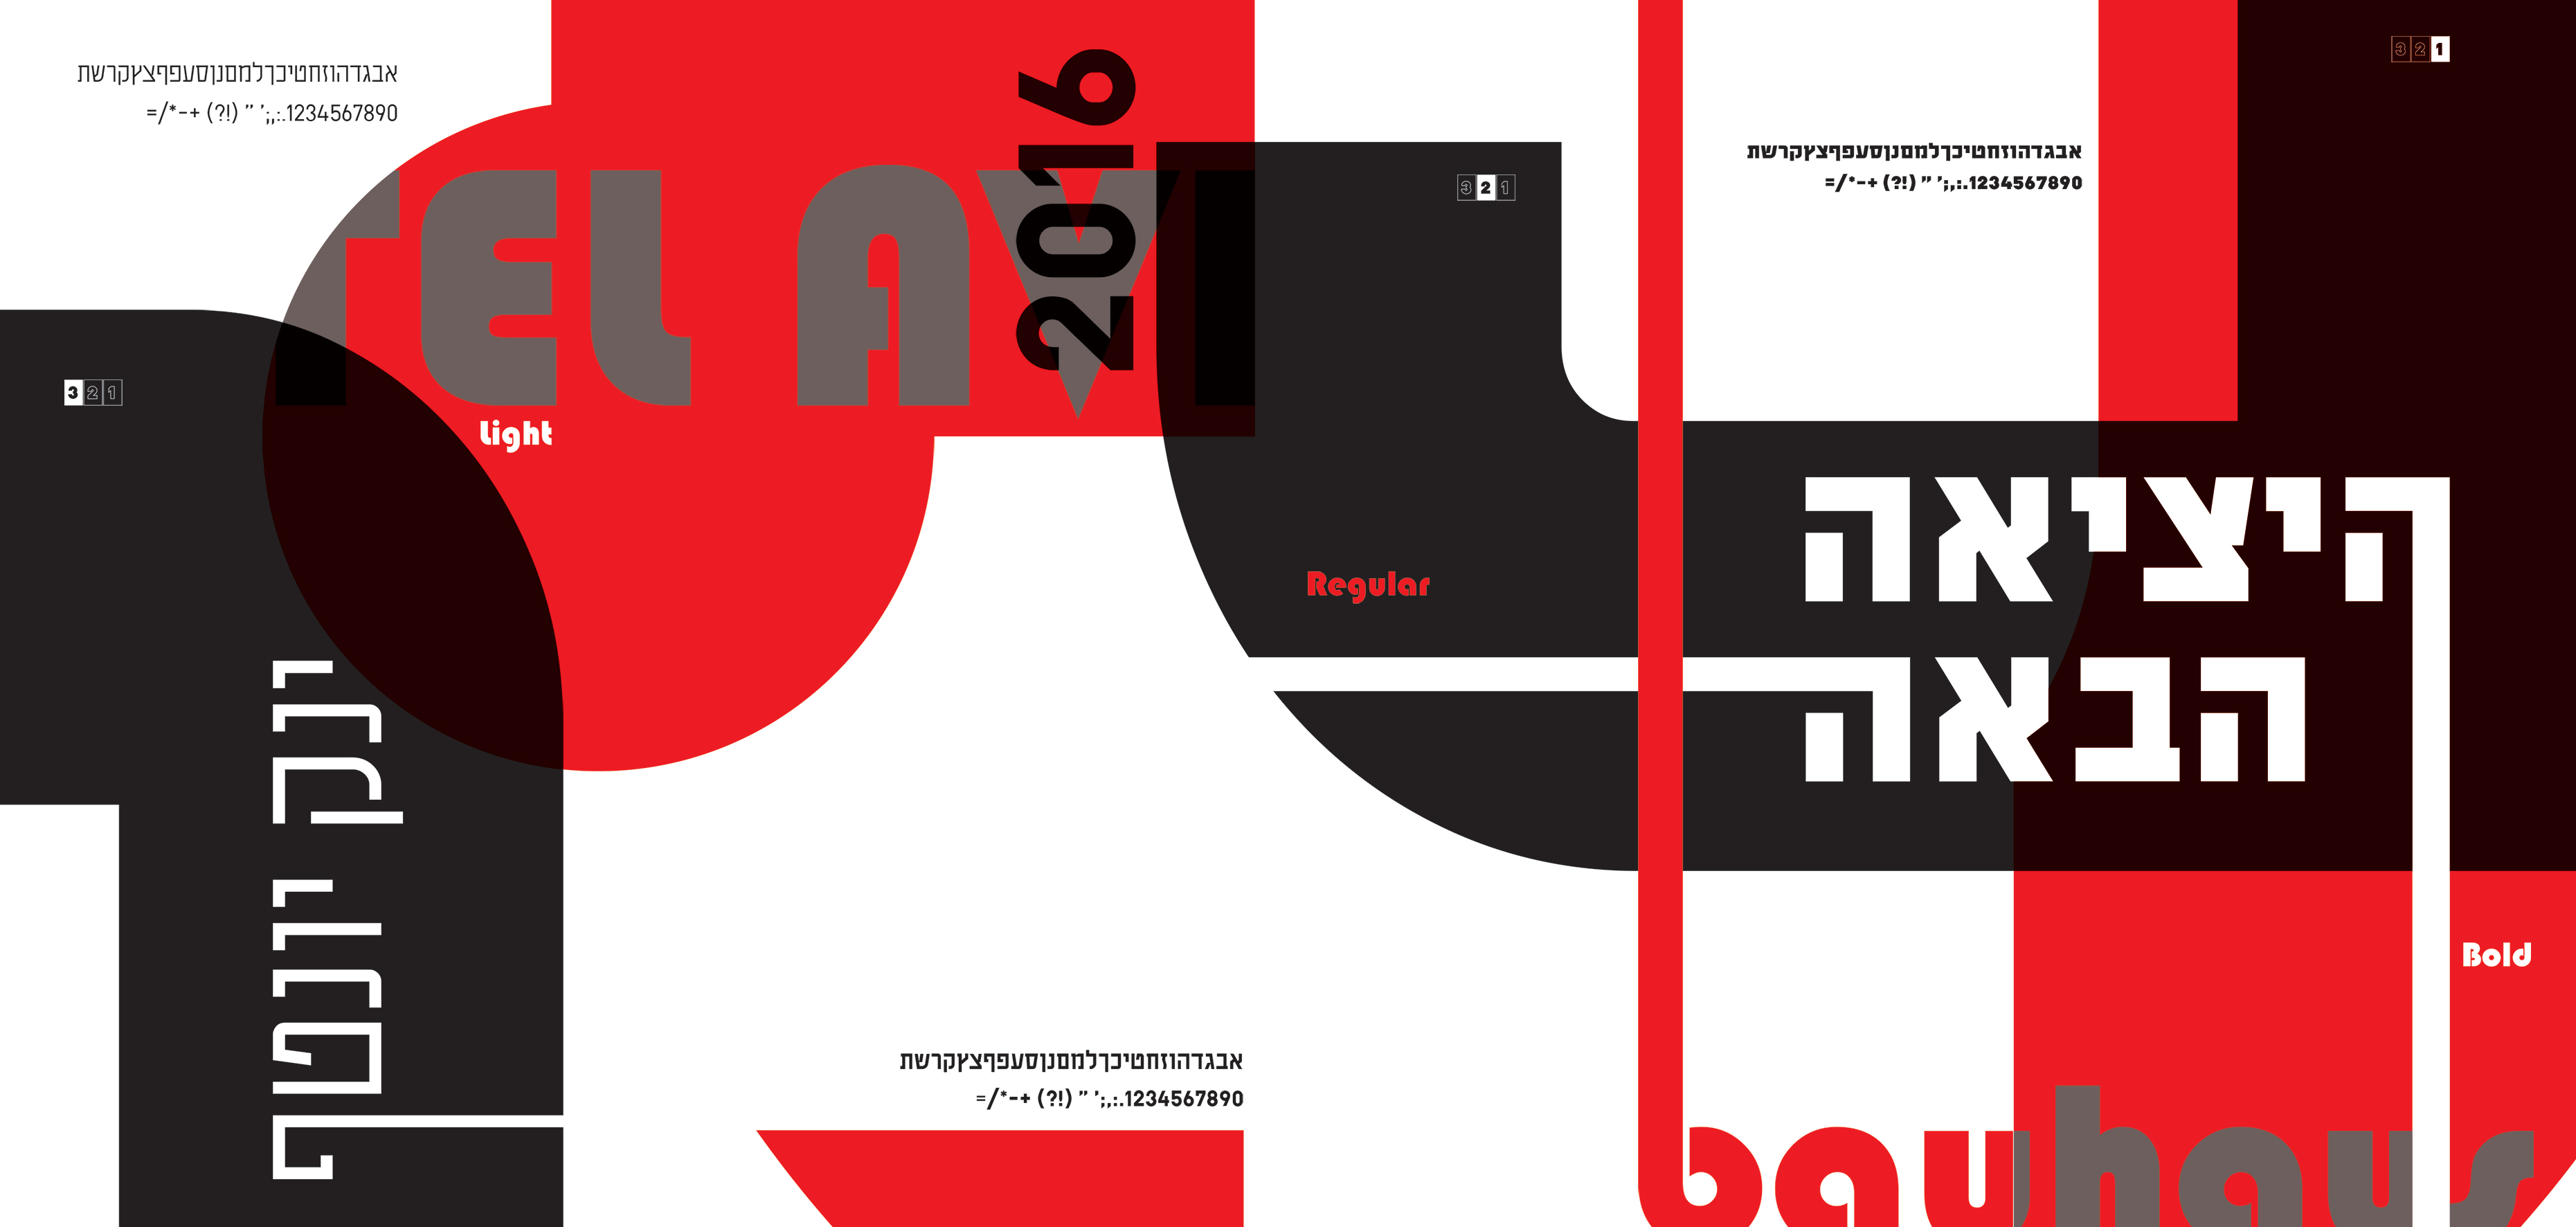 Poster for promoting NEXT EXIT font